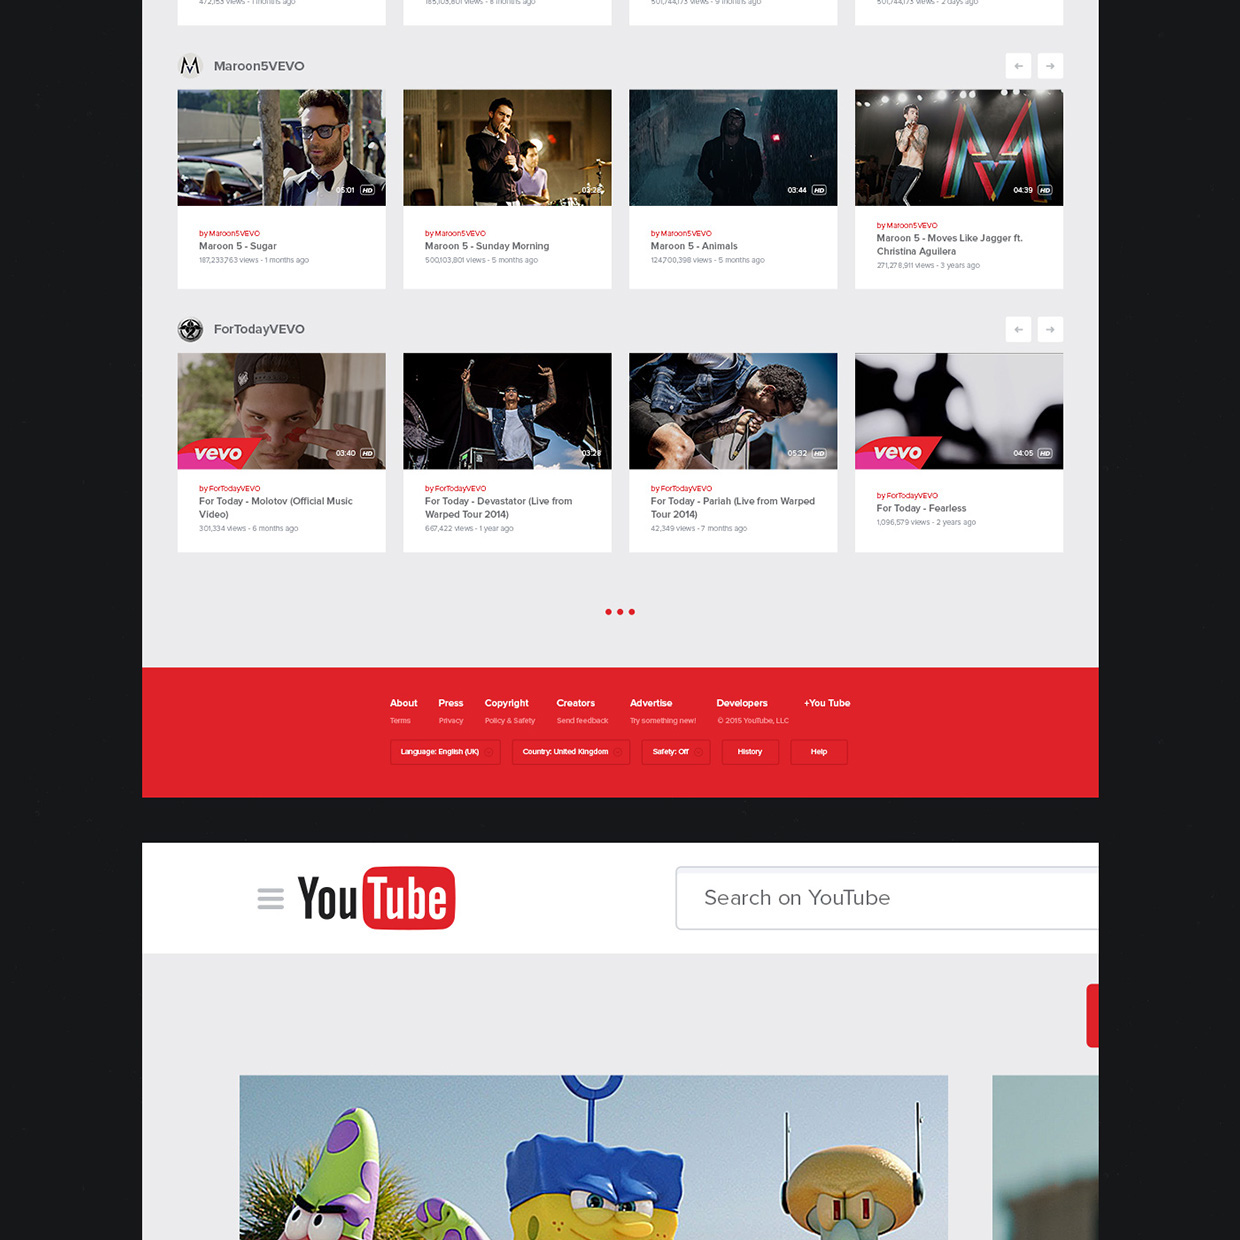 New UX Design Concept of YouTube 2015 By Lucas Nonato (4)